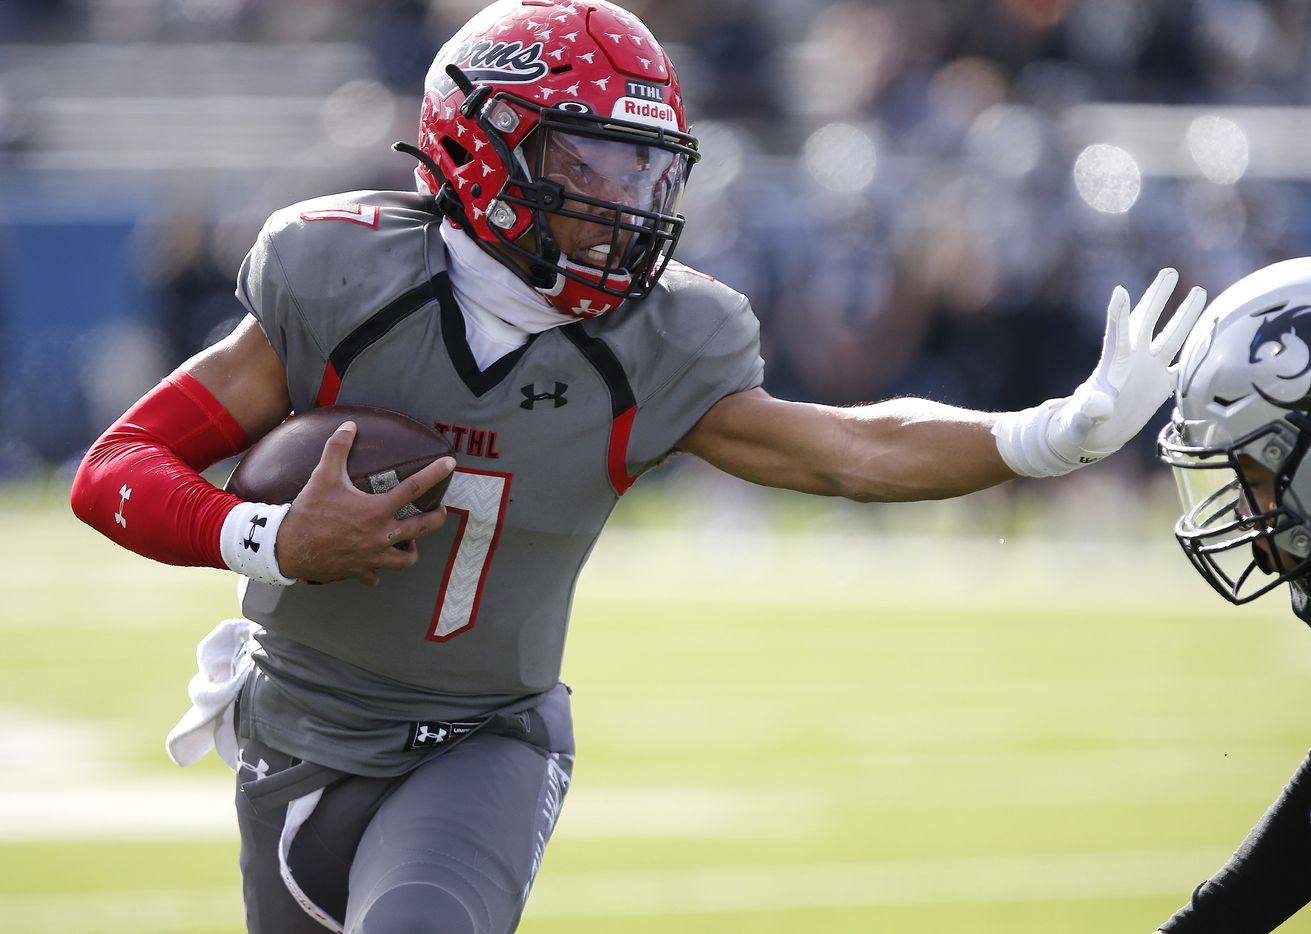 Cedar Hill High School quarterback Kaidon Salter (7) uses a stiff arm on a run during the first half as Denton Guyer High School played Cedar Hill High School in the Class 6A Division II, state semifinal at McKinney ISD Stadium in McKinney on Saturday, January 9, 2021.  (Stewart F. House/Special Contributor)